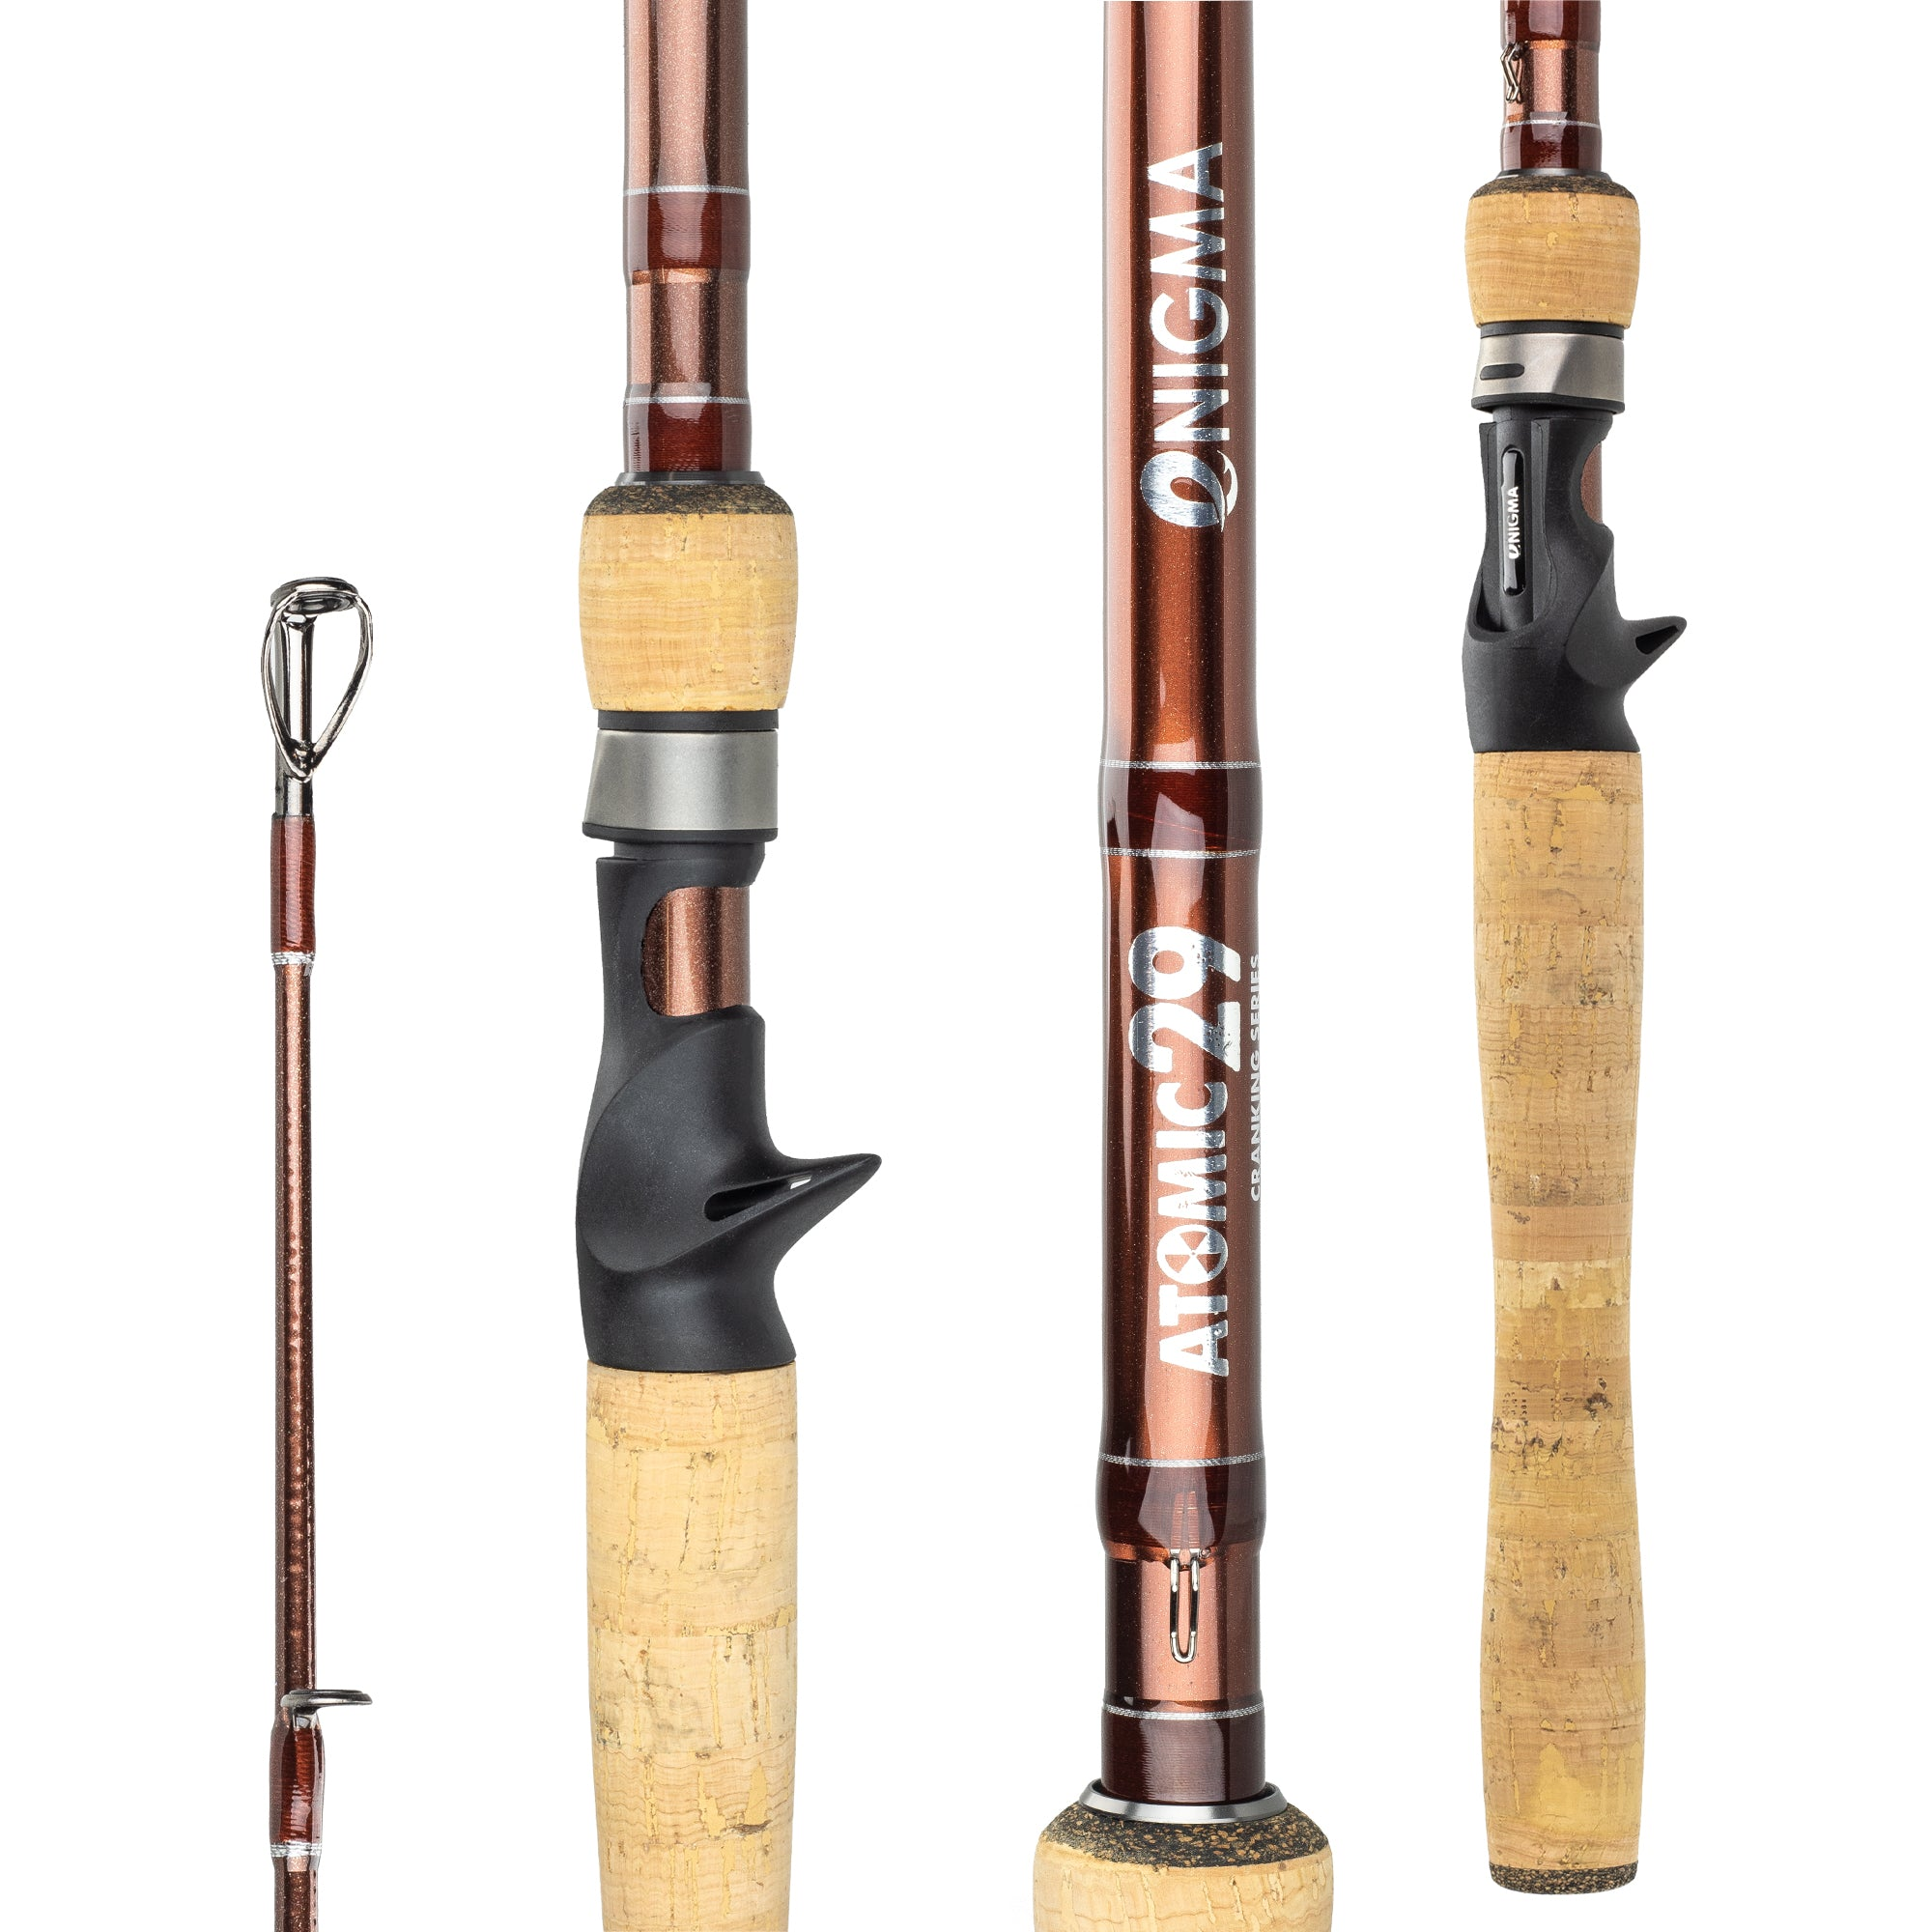 Atomic 29 Cranking Series - Pre Order Select Rods! Shipping 2nd week of Feb.